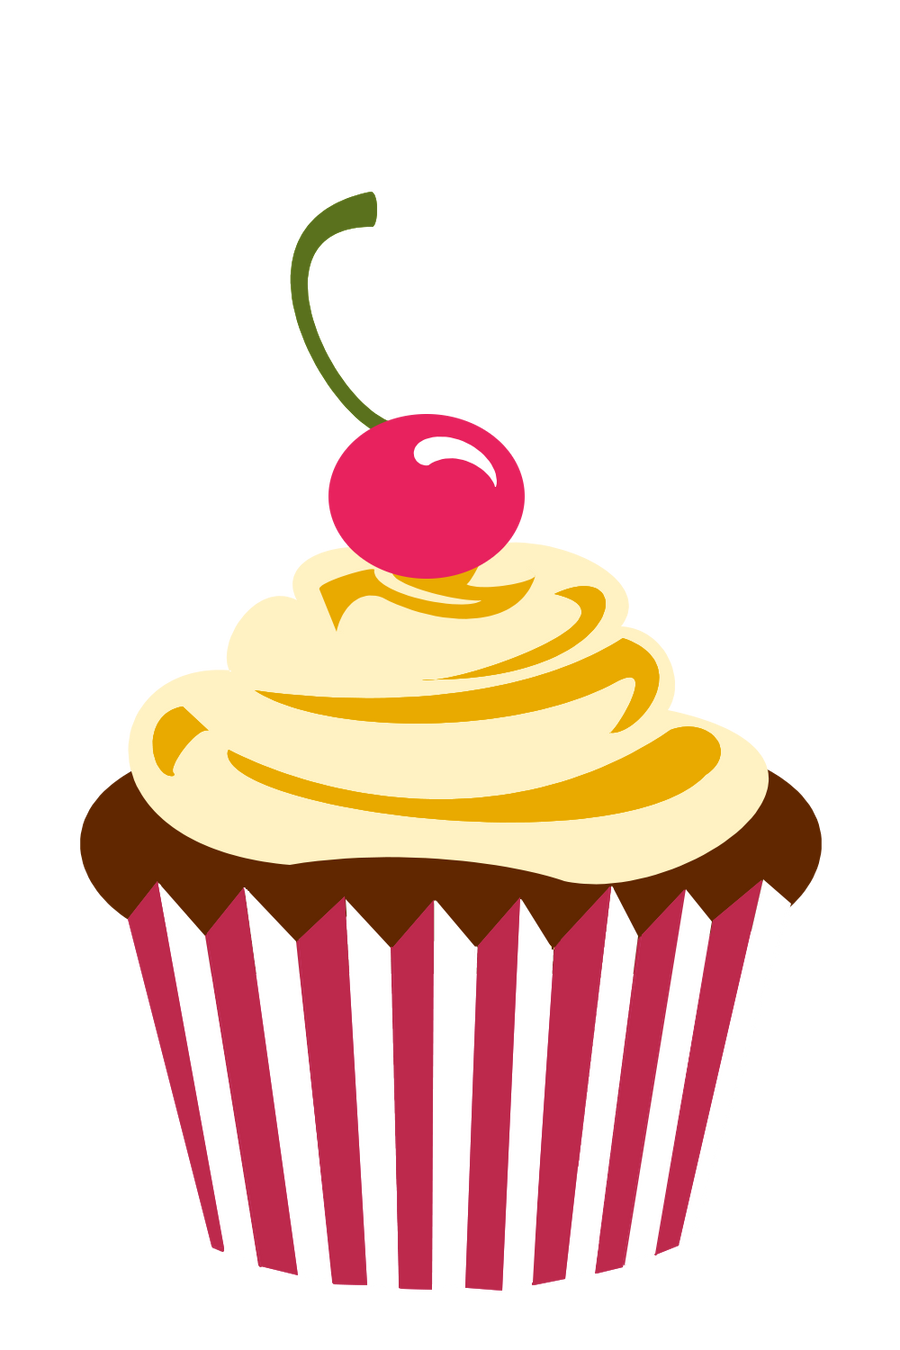 Cherry Chocolate Cupcake by F-A on DeviantArt